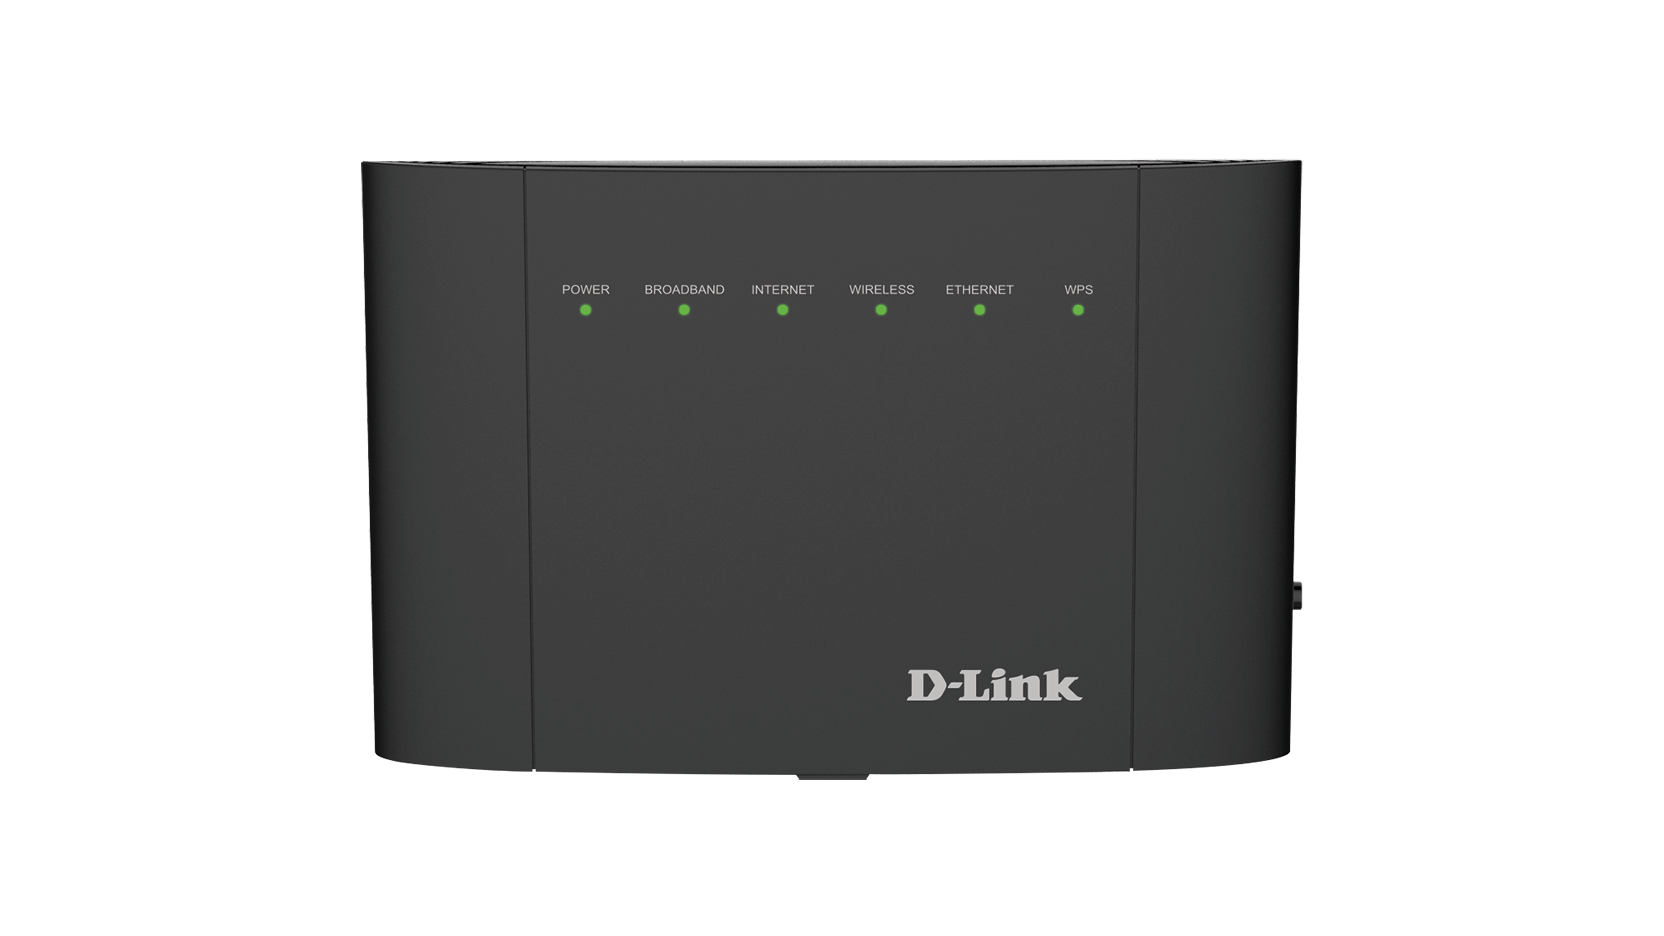 DSL-3785 Wireless AC1200 Dual-Band Gigabit VDSL/ADSL Modem Router